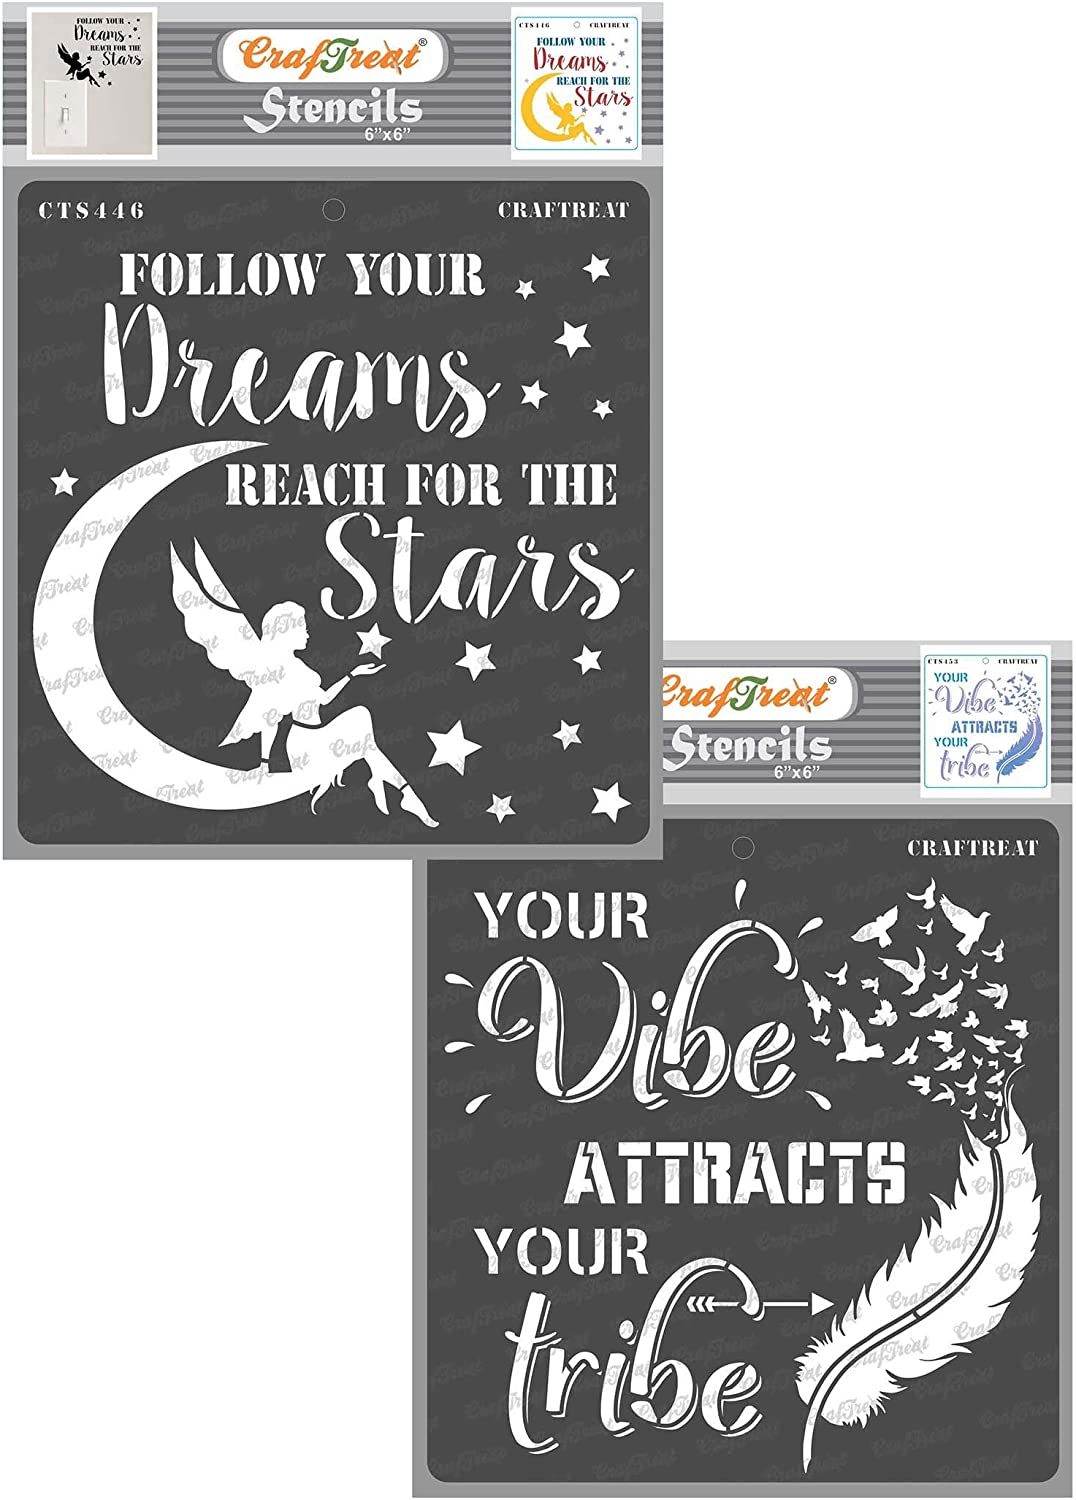 CrafTreat Stencils for Painting on Wood, Paper, Fabric, Wall and Tile - Reach for The Stars and Vibe Attracts Tribe - 2 Pcs - 6x6 Inches Each - Reusable DIY Art and Craft Stencils for Home Decor